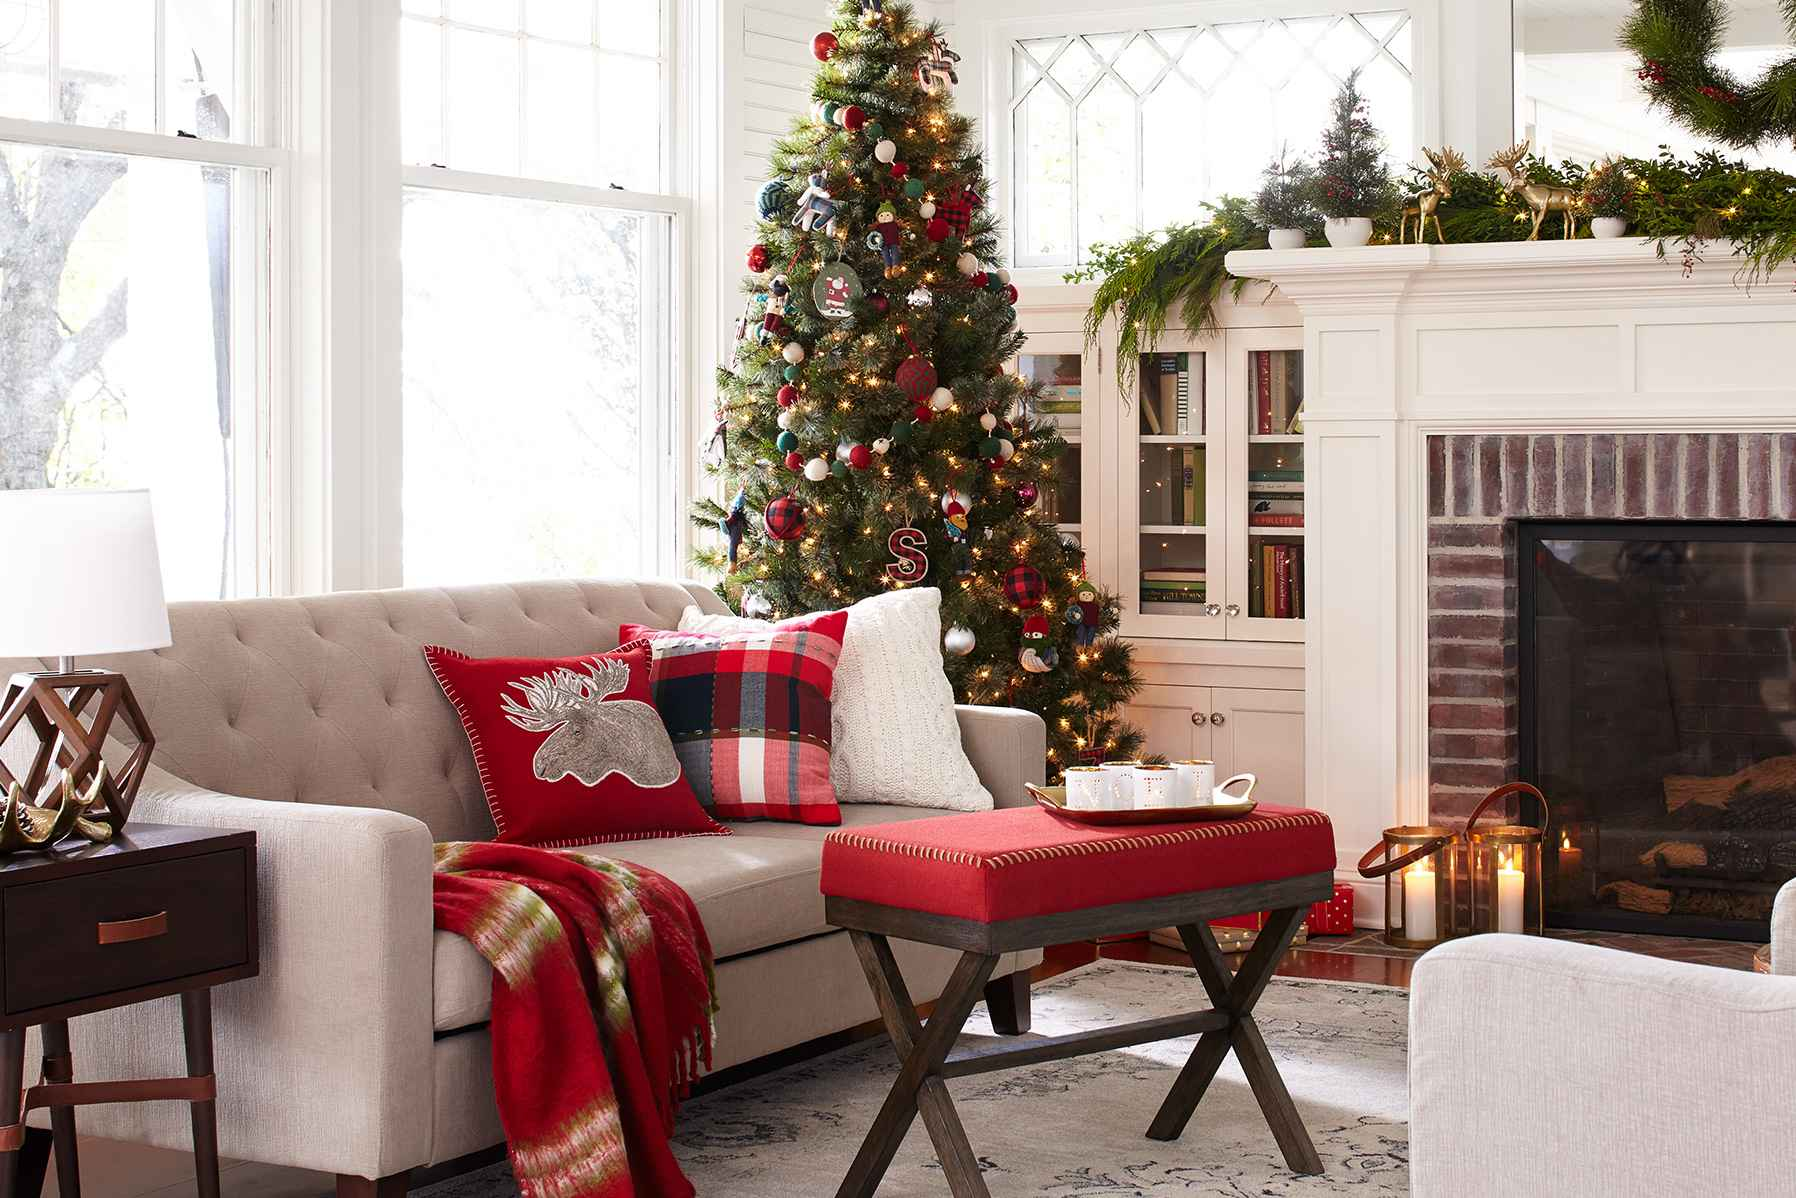 Living Room Pictures For Home Decor home decor target kindred christmas collection